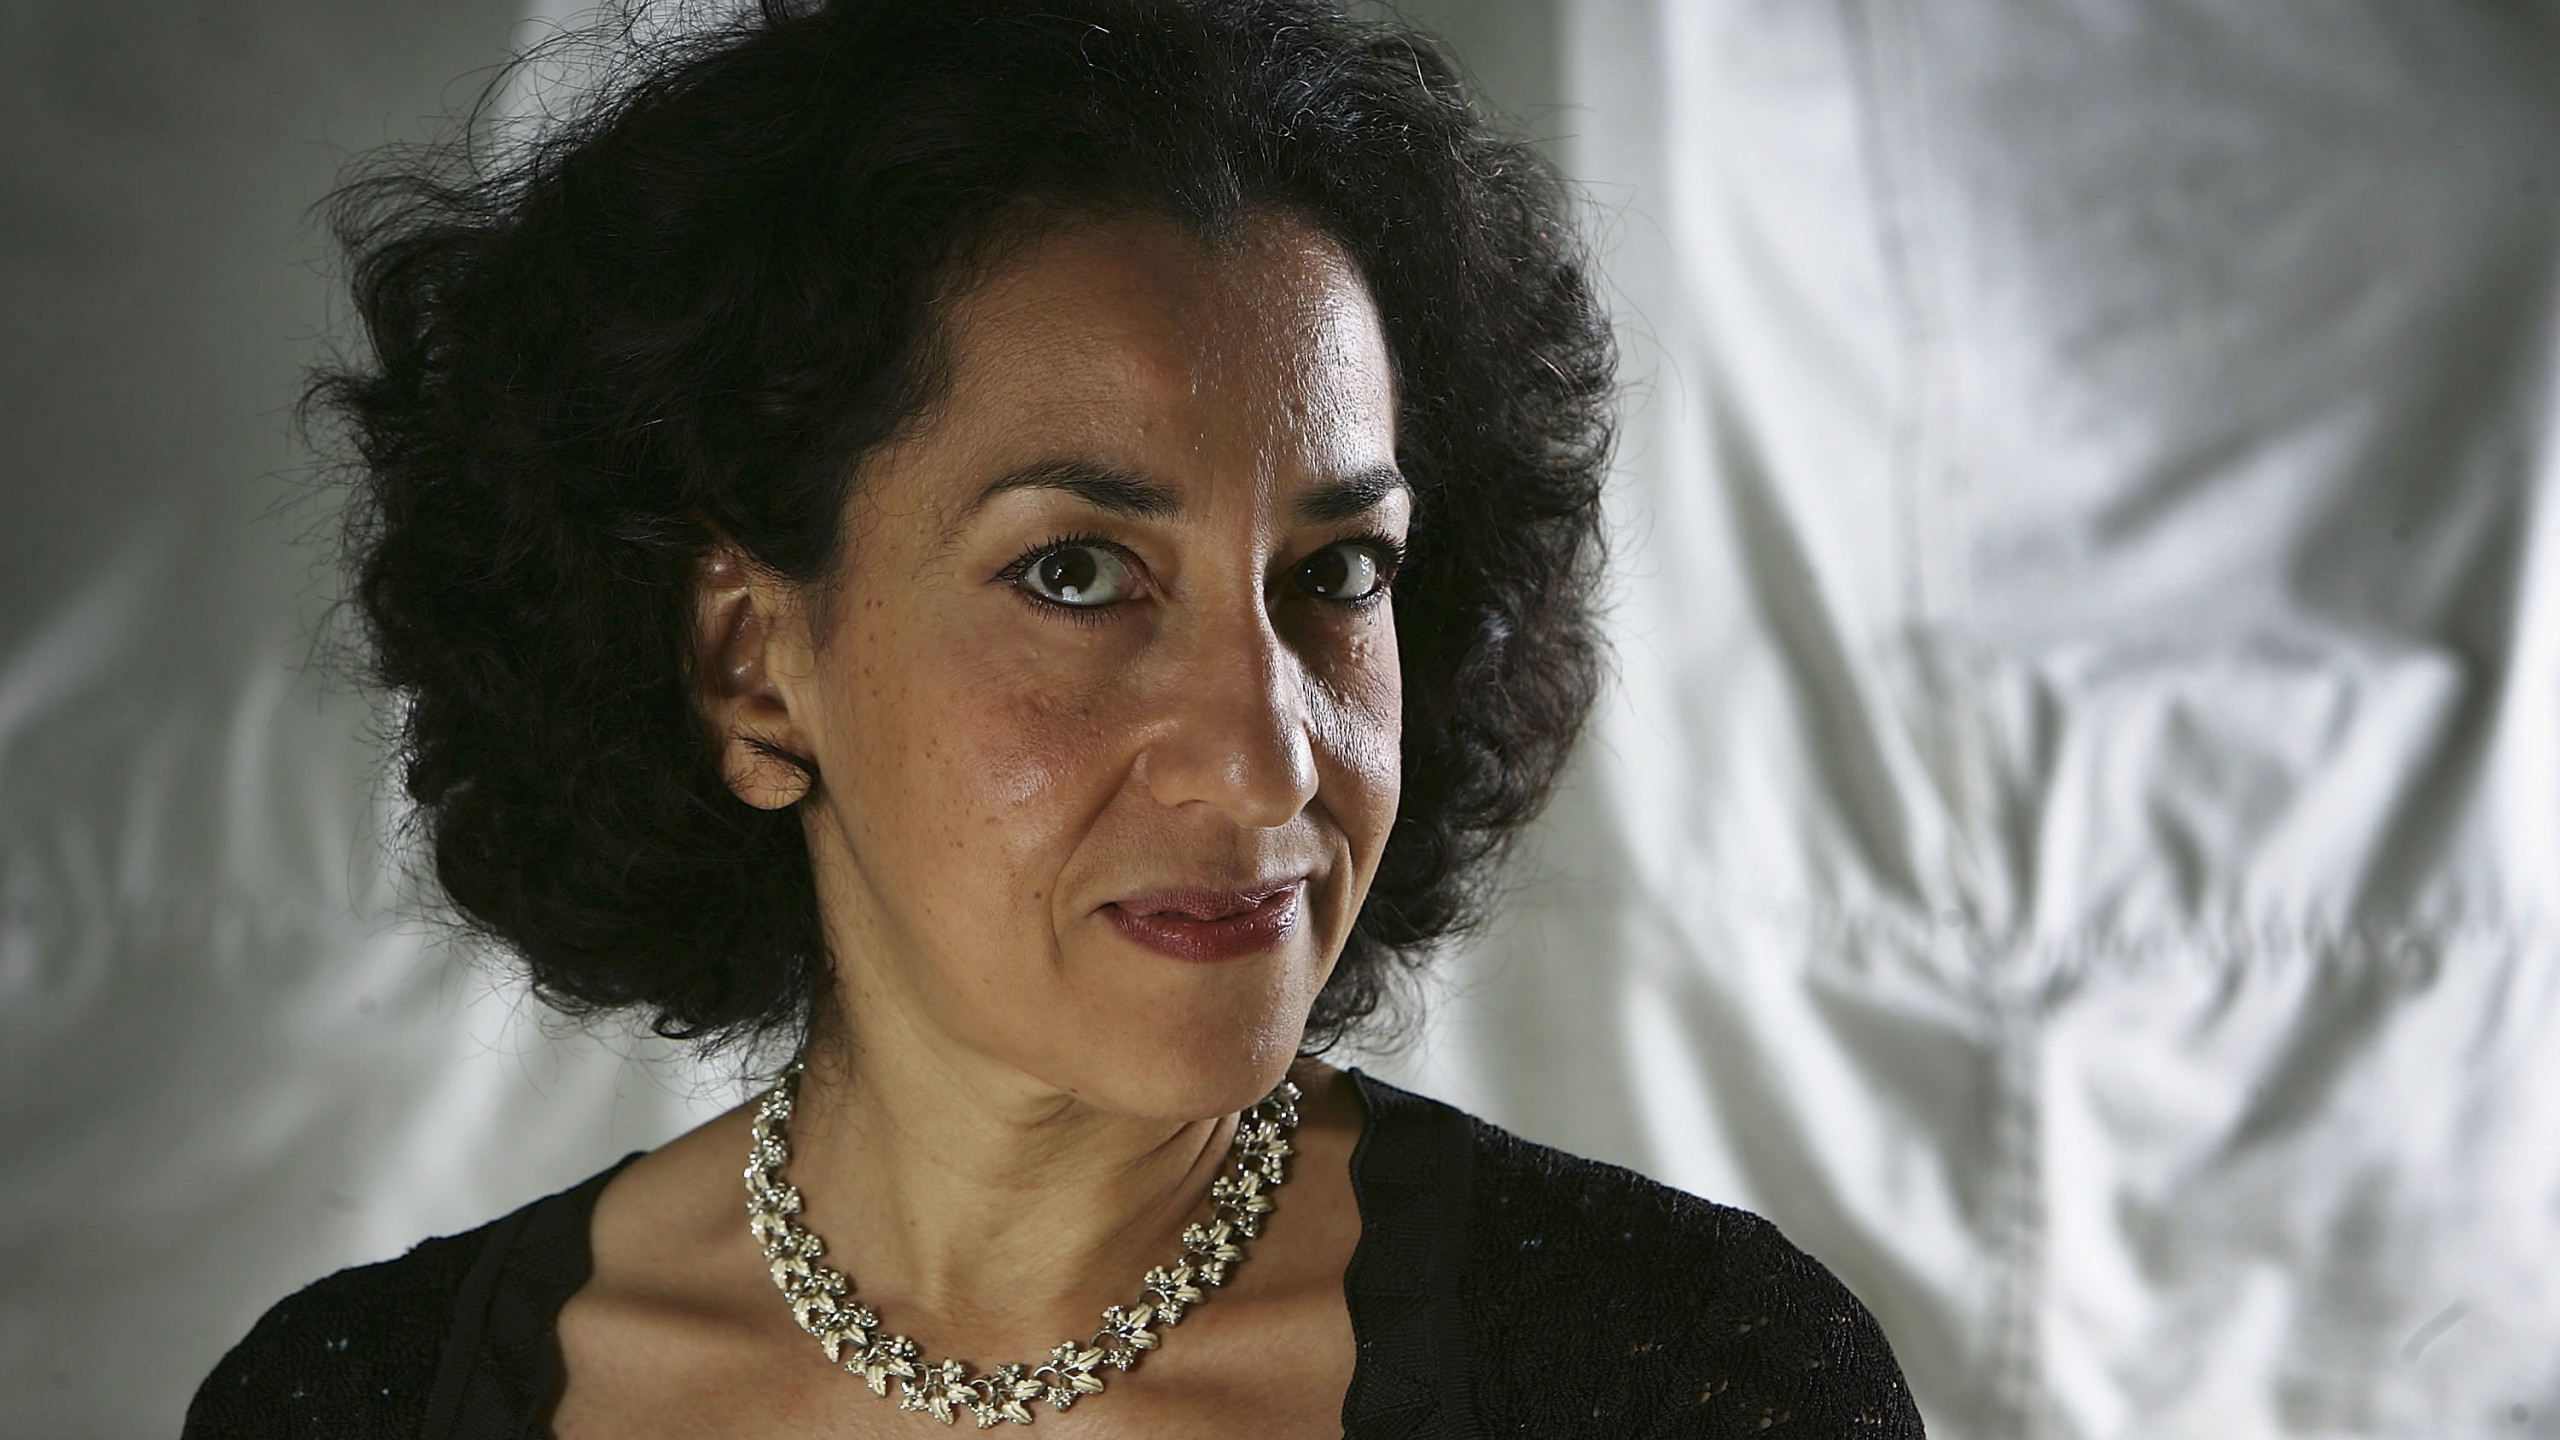 Author Andrea Levy poses for a portrait at Edinburgh Literary Festival held at Charlotte Square on August 16, 2005 in Glasgow, Scotland. (Credit: Christopher Furlong/Getty Images)